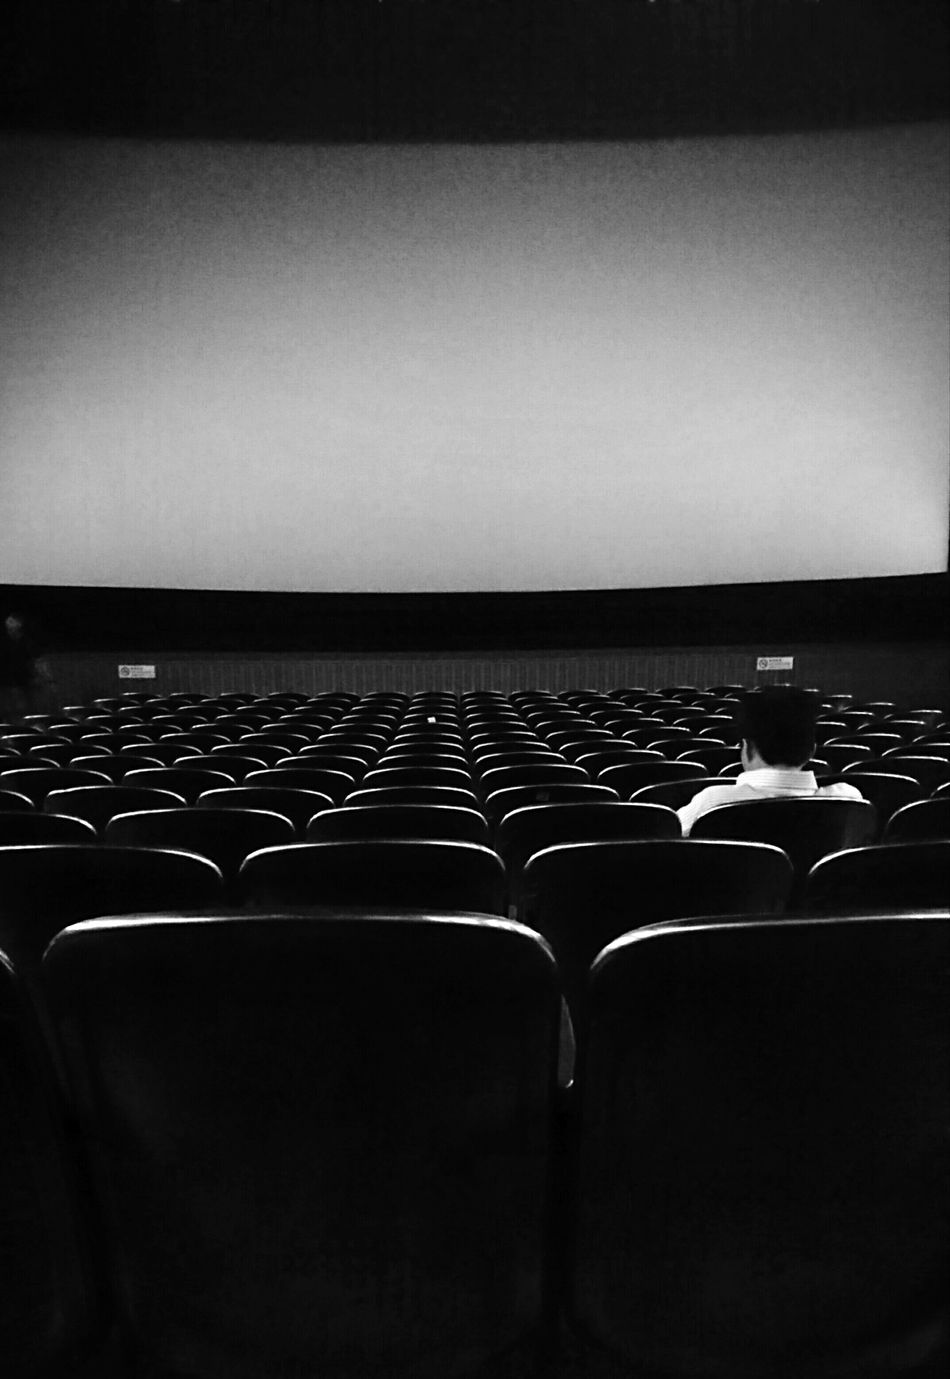 Old Theater Urban Life Empty Seat Hong Kong New Movie  Morning Theater Waiting